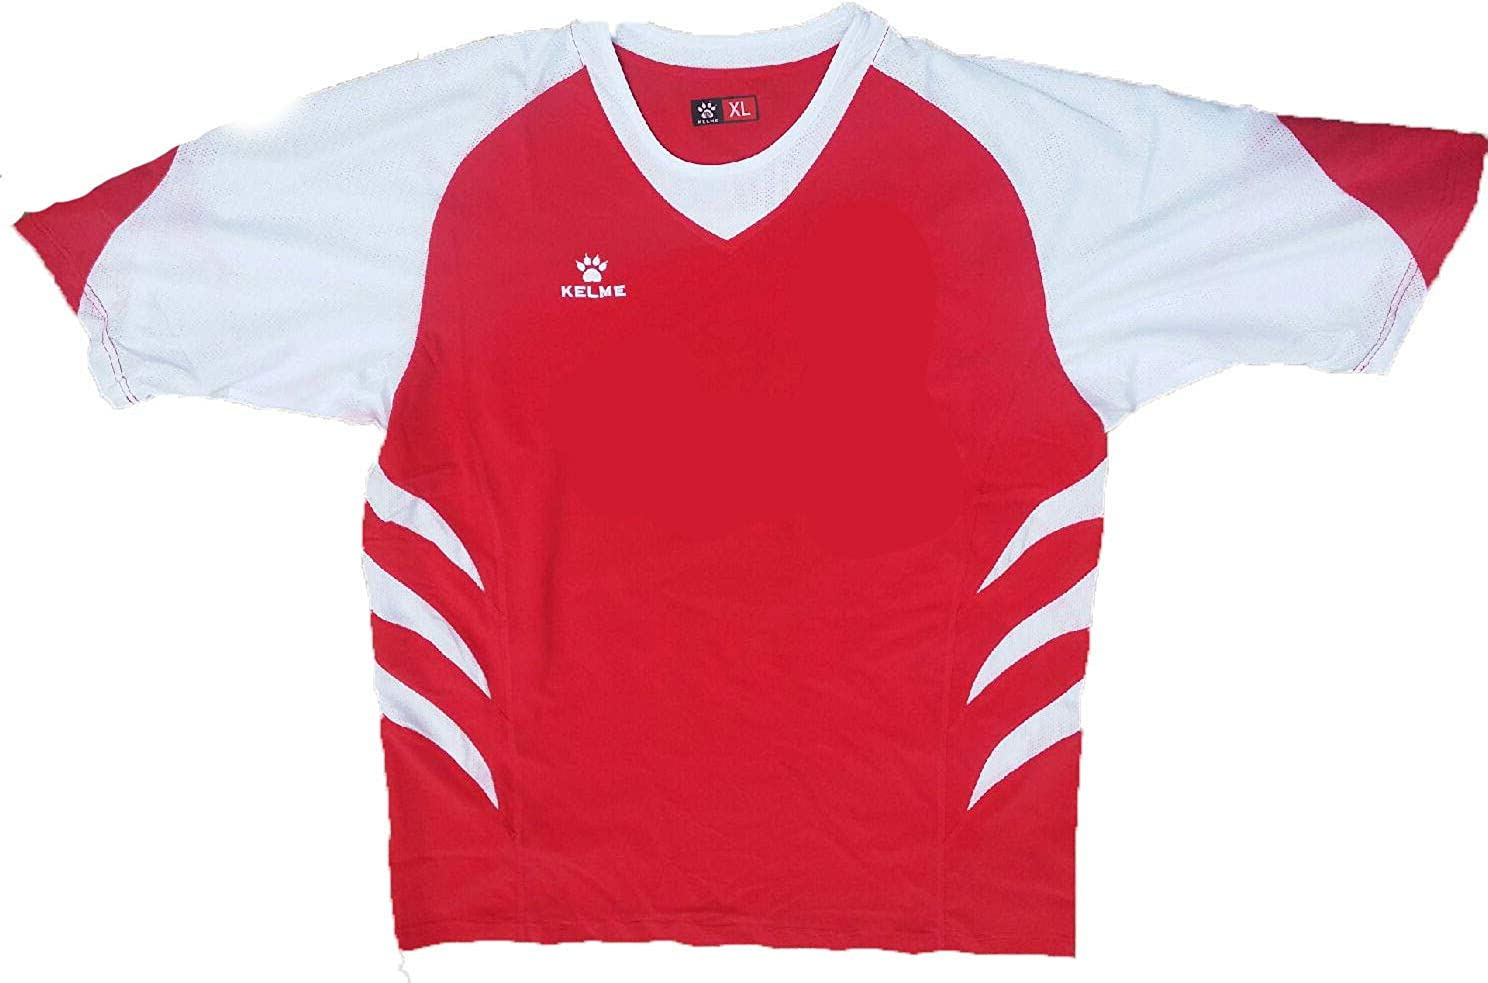 B0867D8FWY Soccer Jersey, Kelme, RED Color, Size Adult X Large 61ggEK25PPL